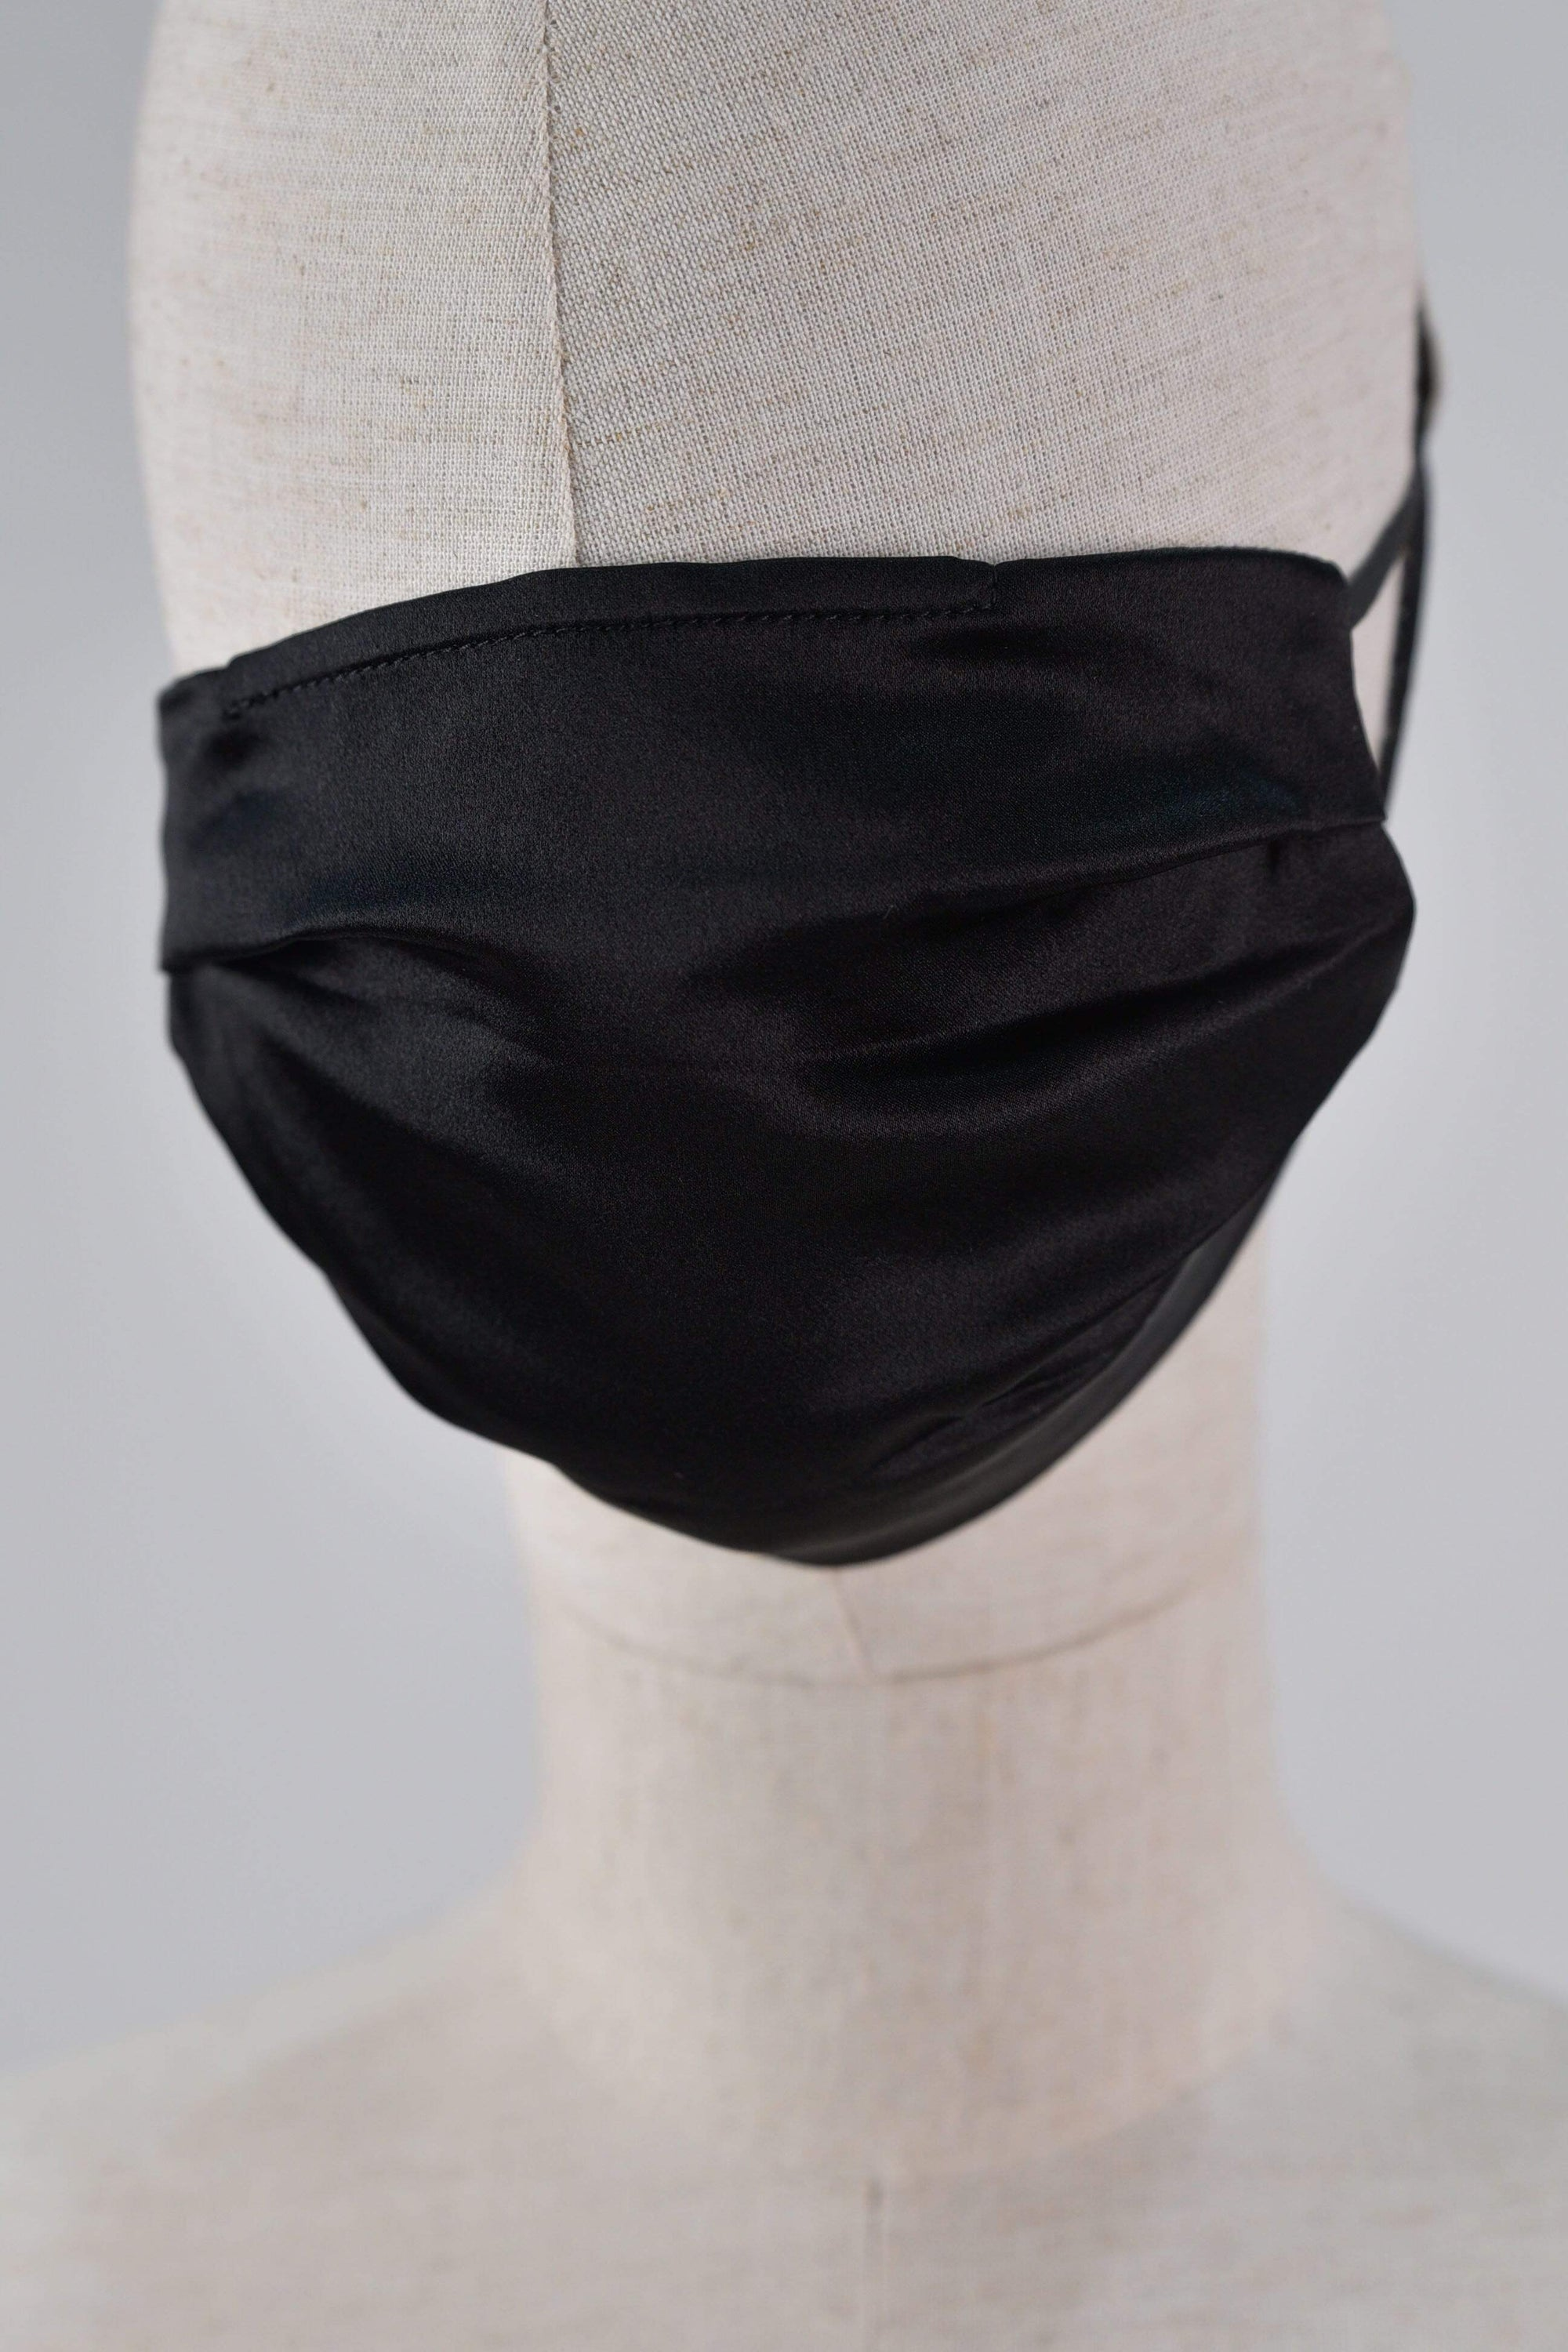 All Would Envy Accessories *BACKORDER* SILK MASK IN BLACK